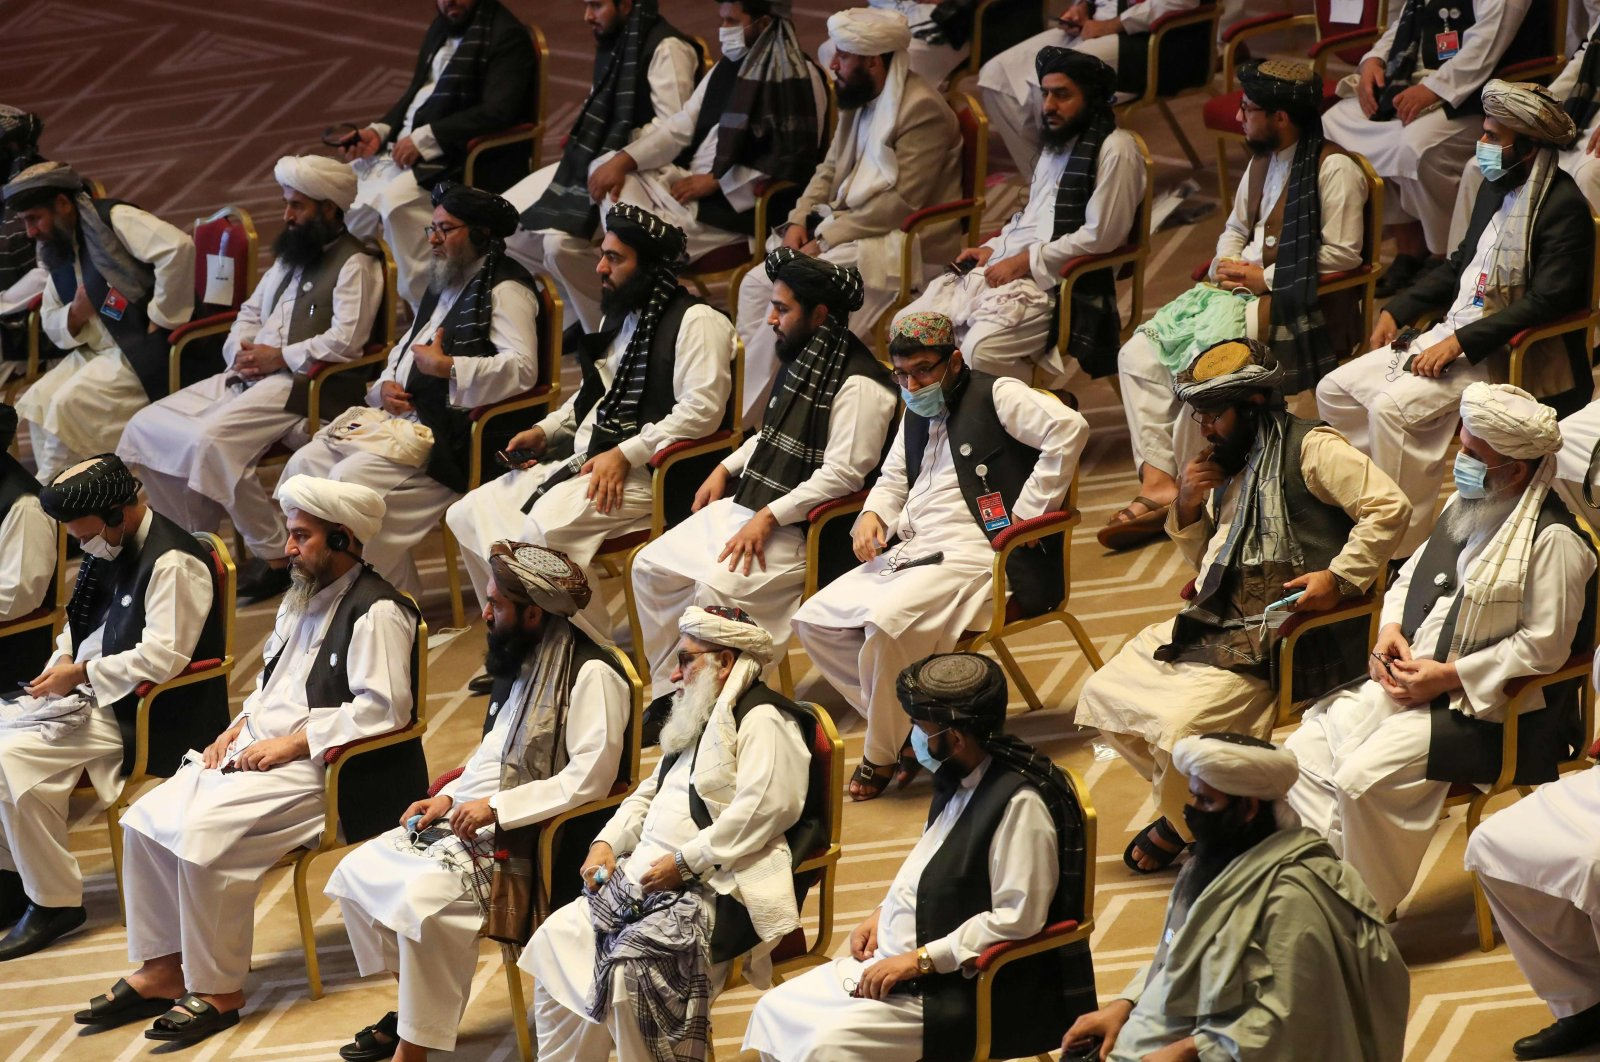 Members of the Taliban delegation attend the opening session of the peace talks between the Afghan government and the Taliban in Doha, Qatar, Sept. 12, 2020. (AFP Photo)